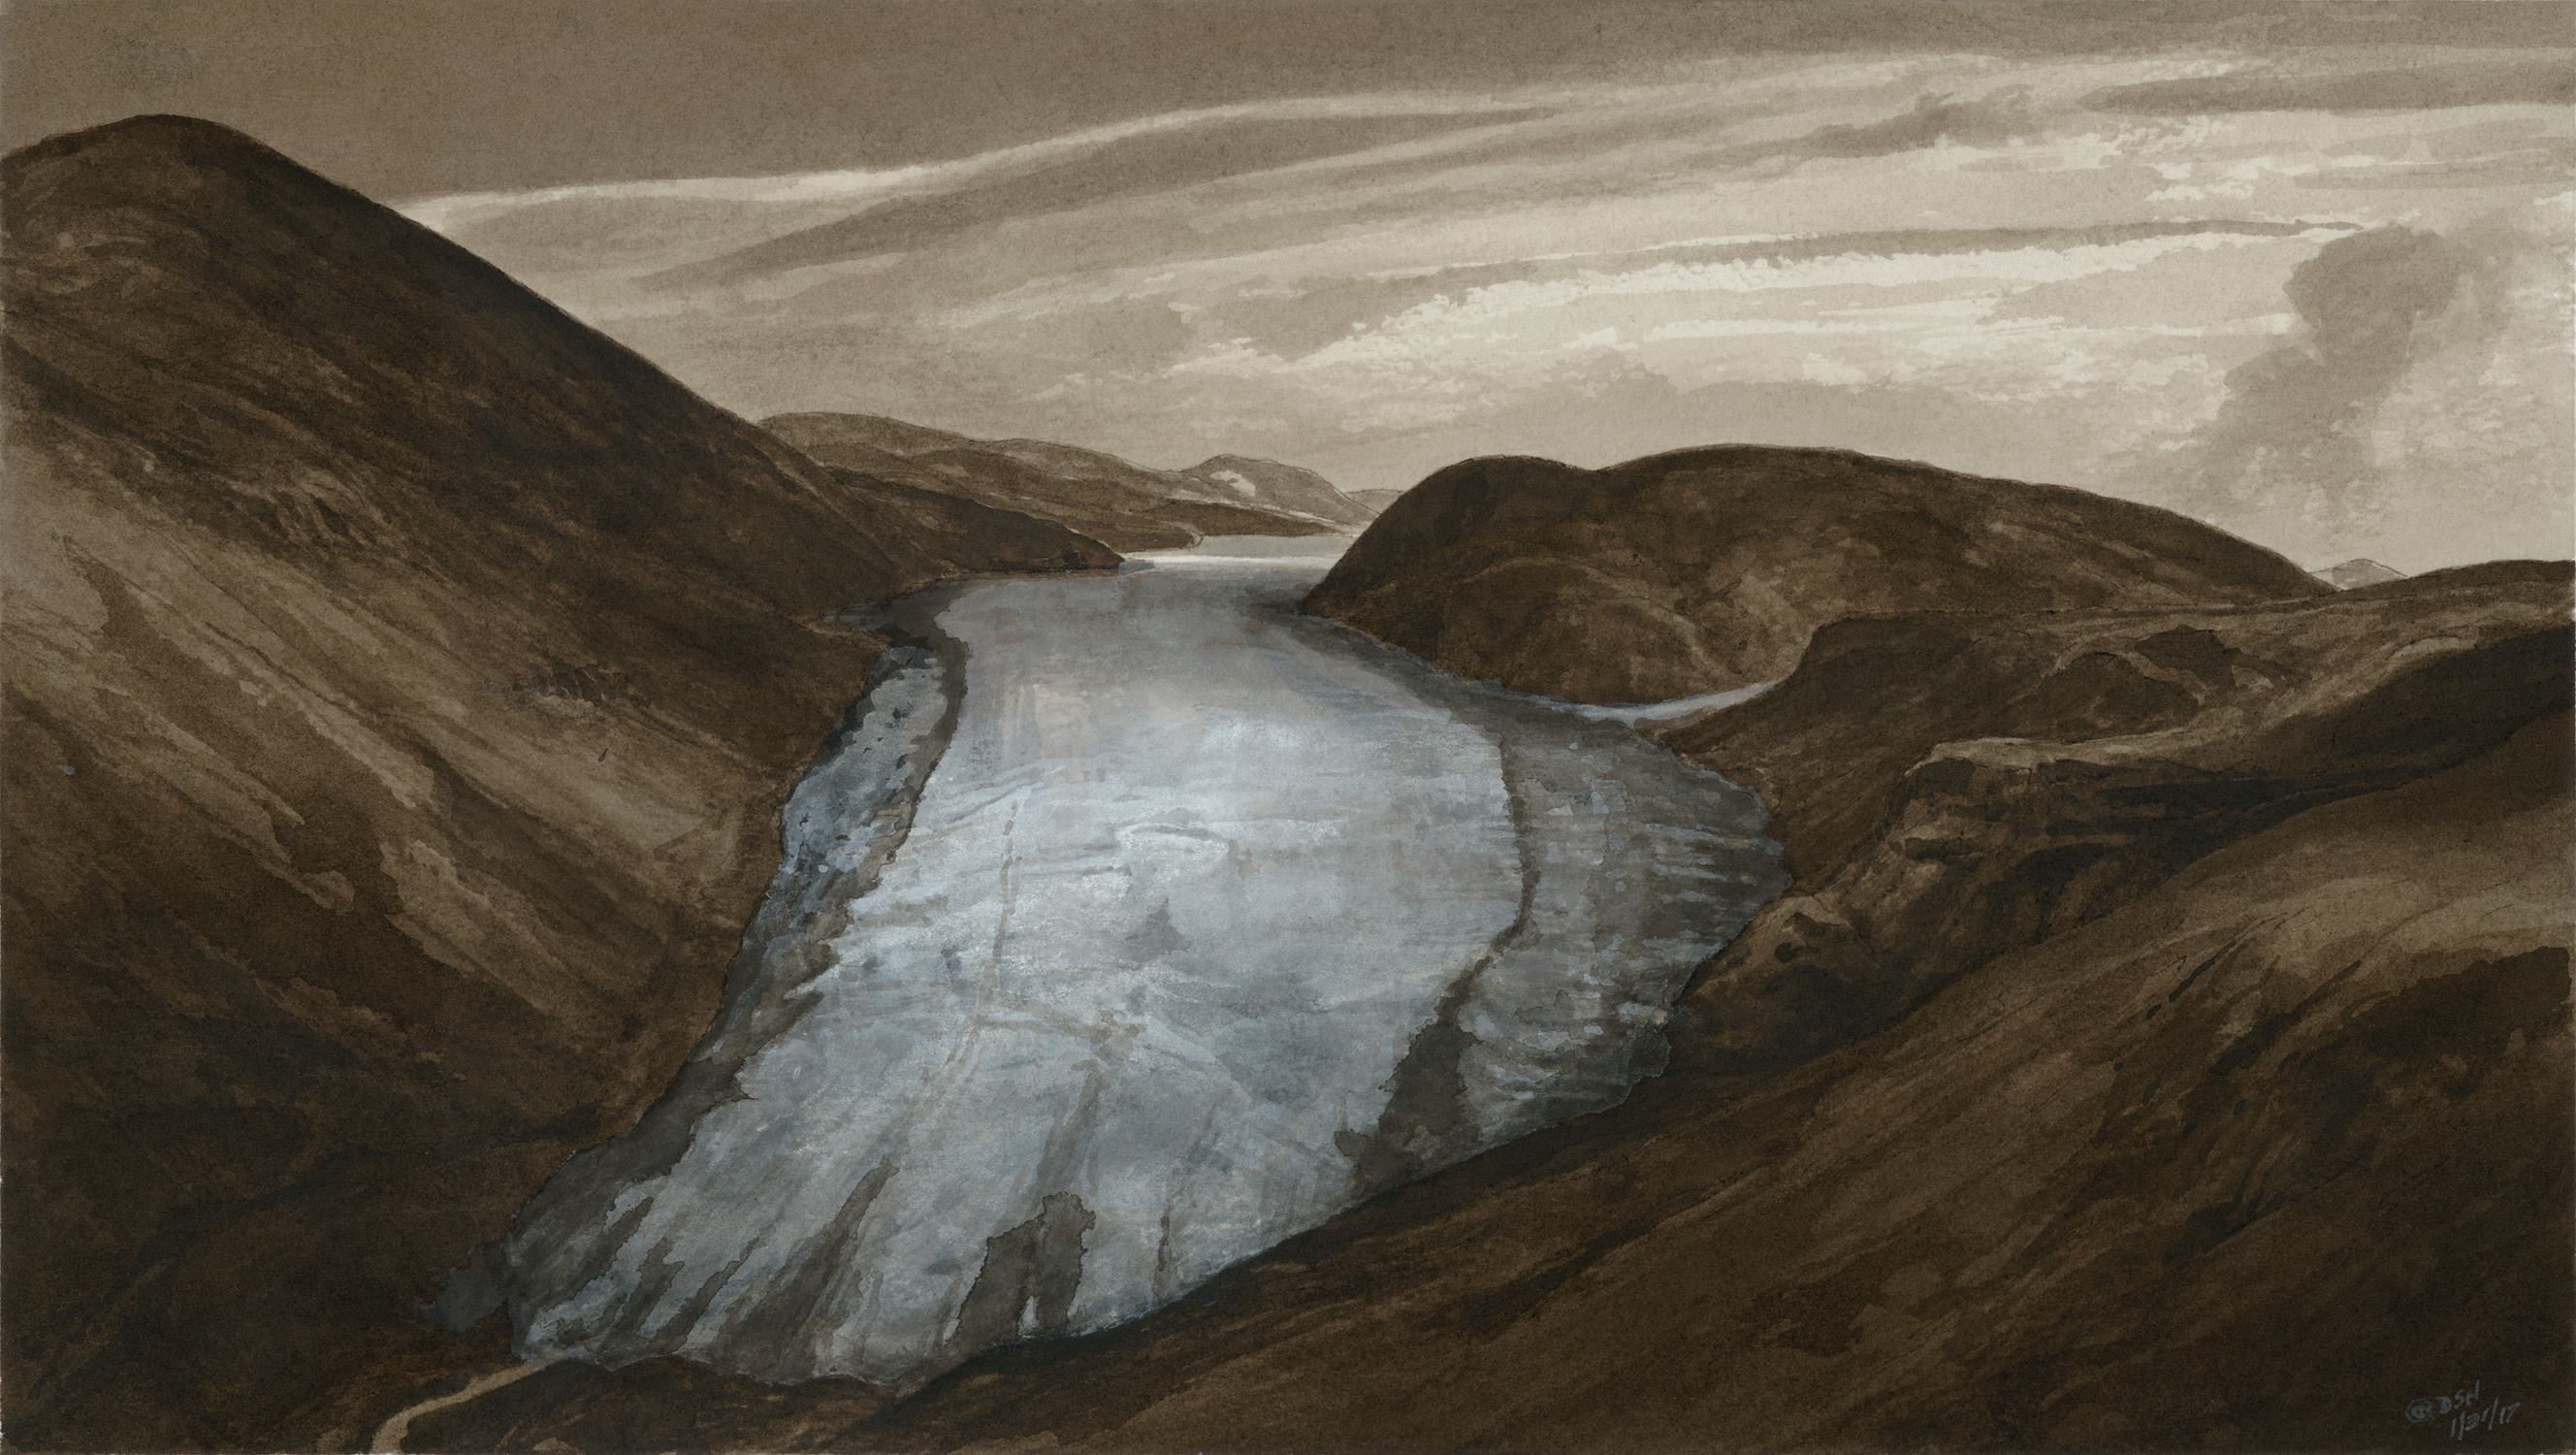 Receding Glacier within the Black Canyon of the Yellowstone Artwork by Douglas Henderson